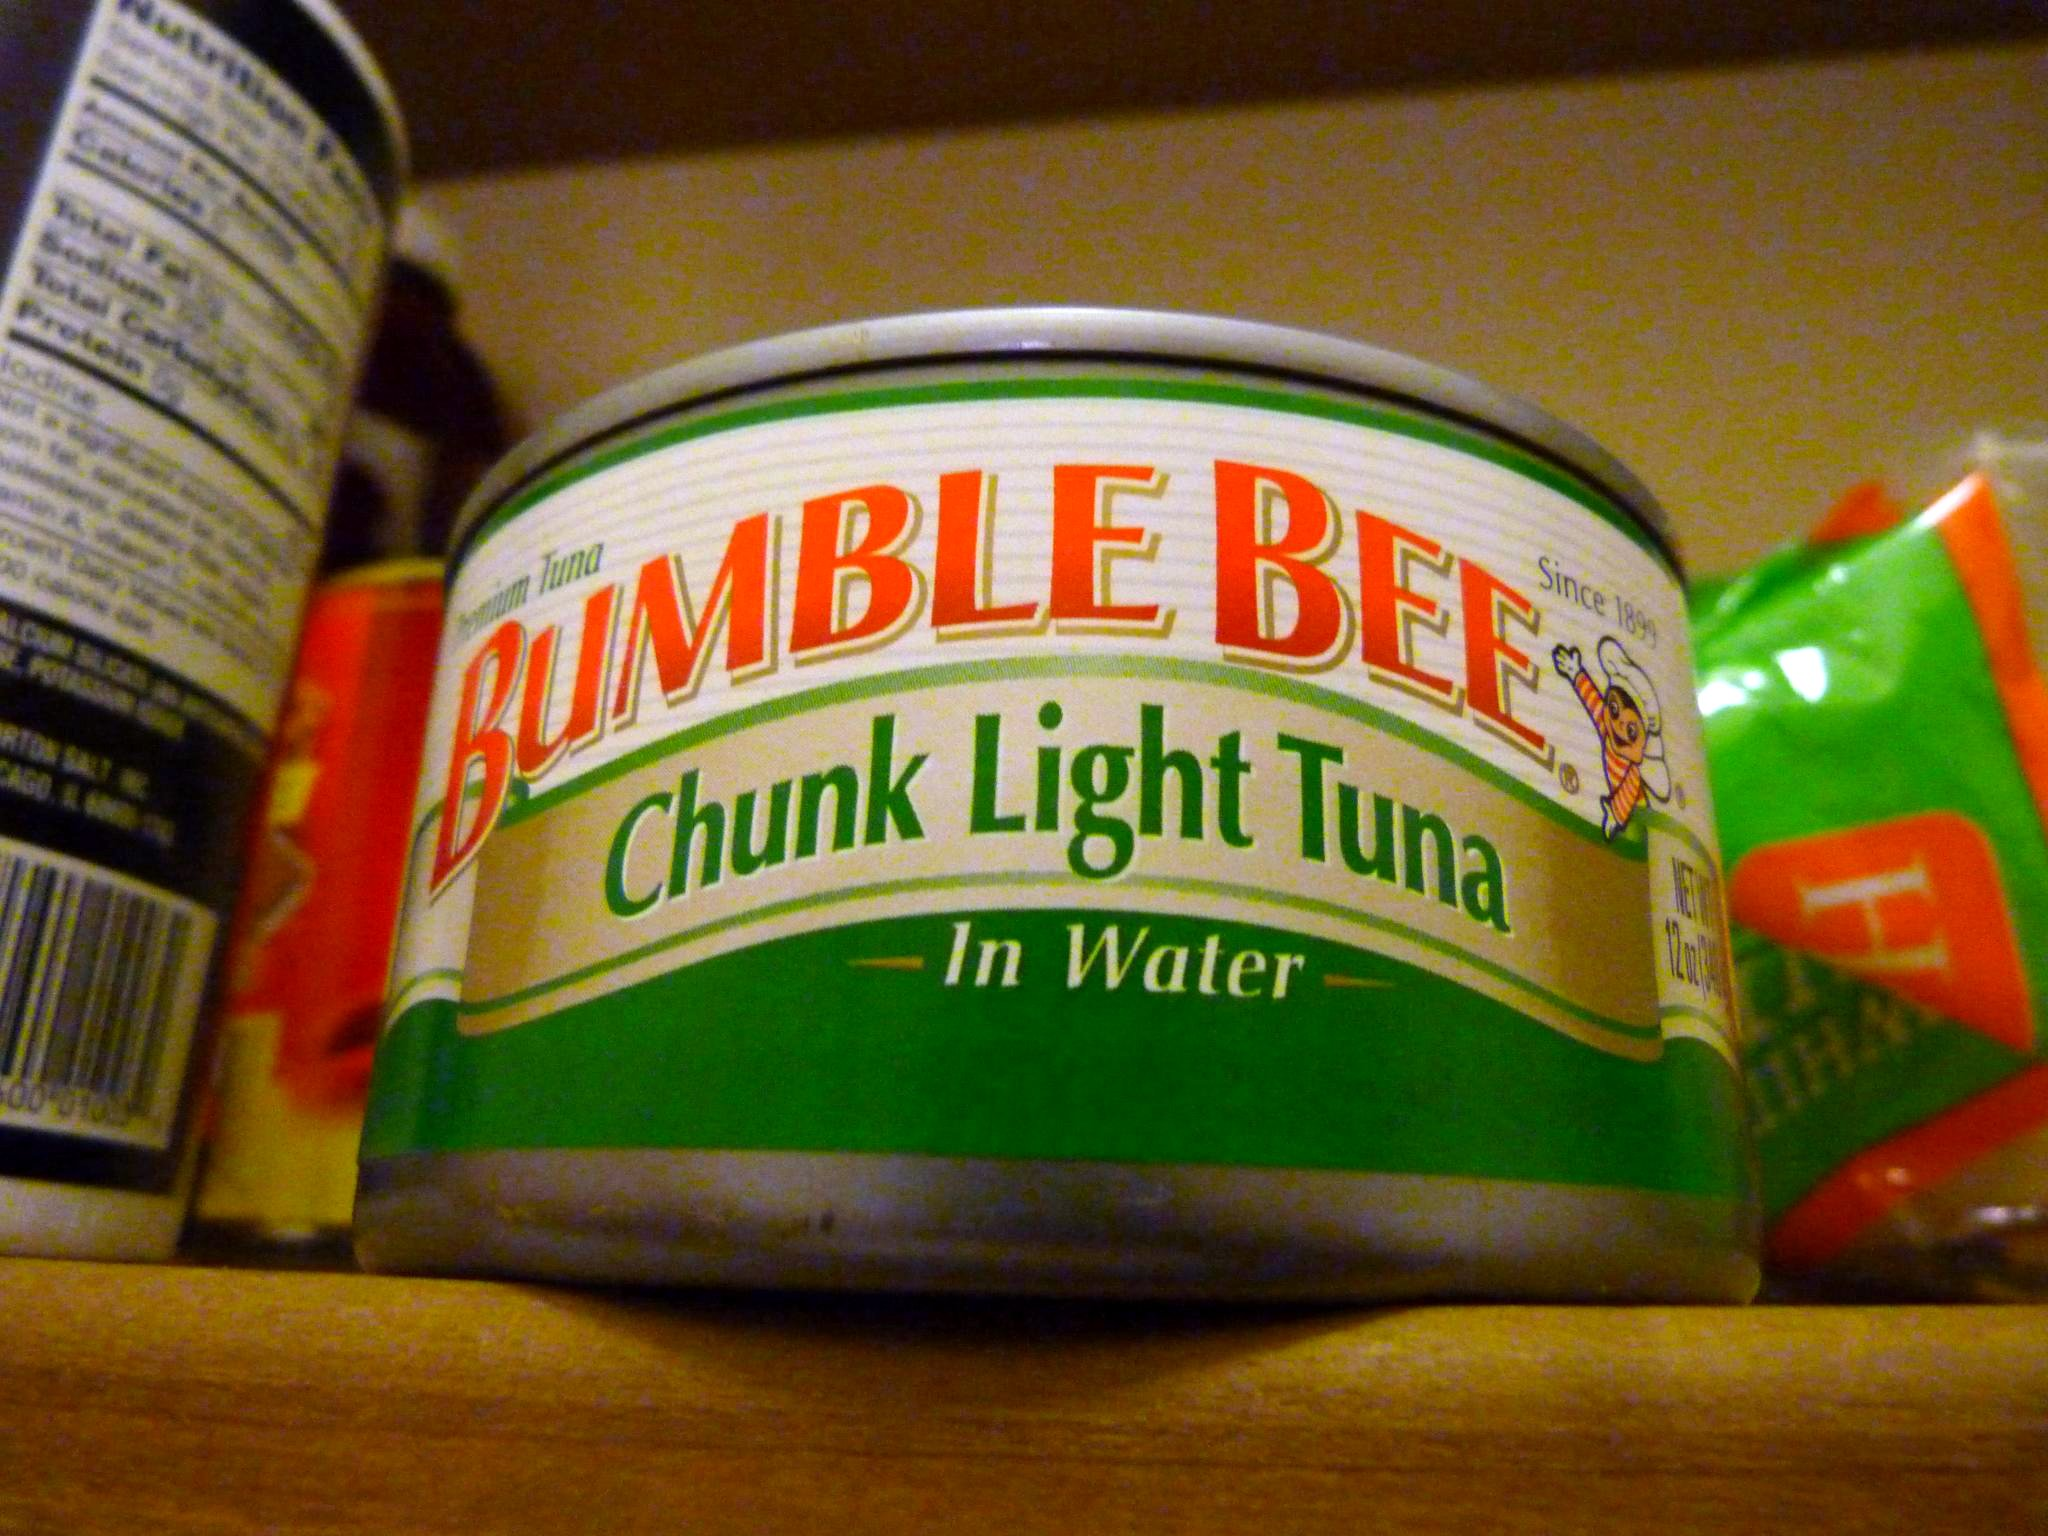 Bumble Bee Foods Will Pay $6M After Worker Was Cooked to Death